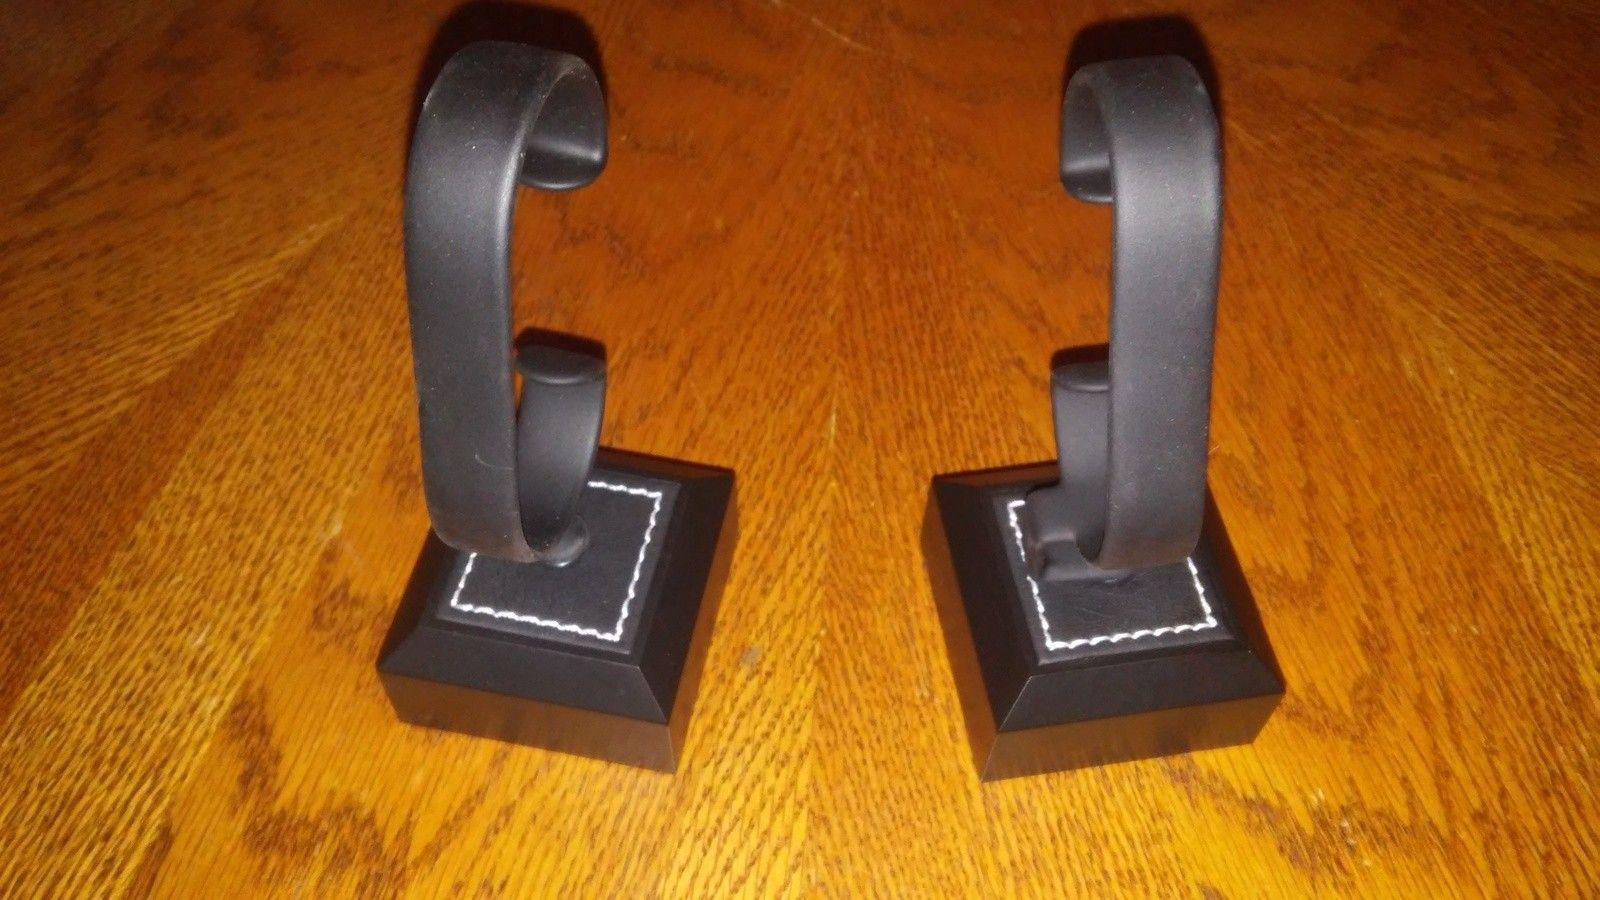 New watch stands - 20150625_231042.jpg